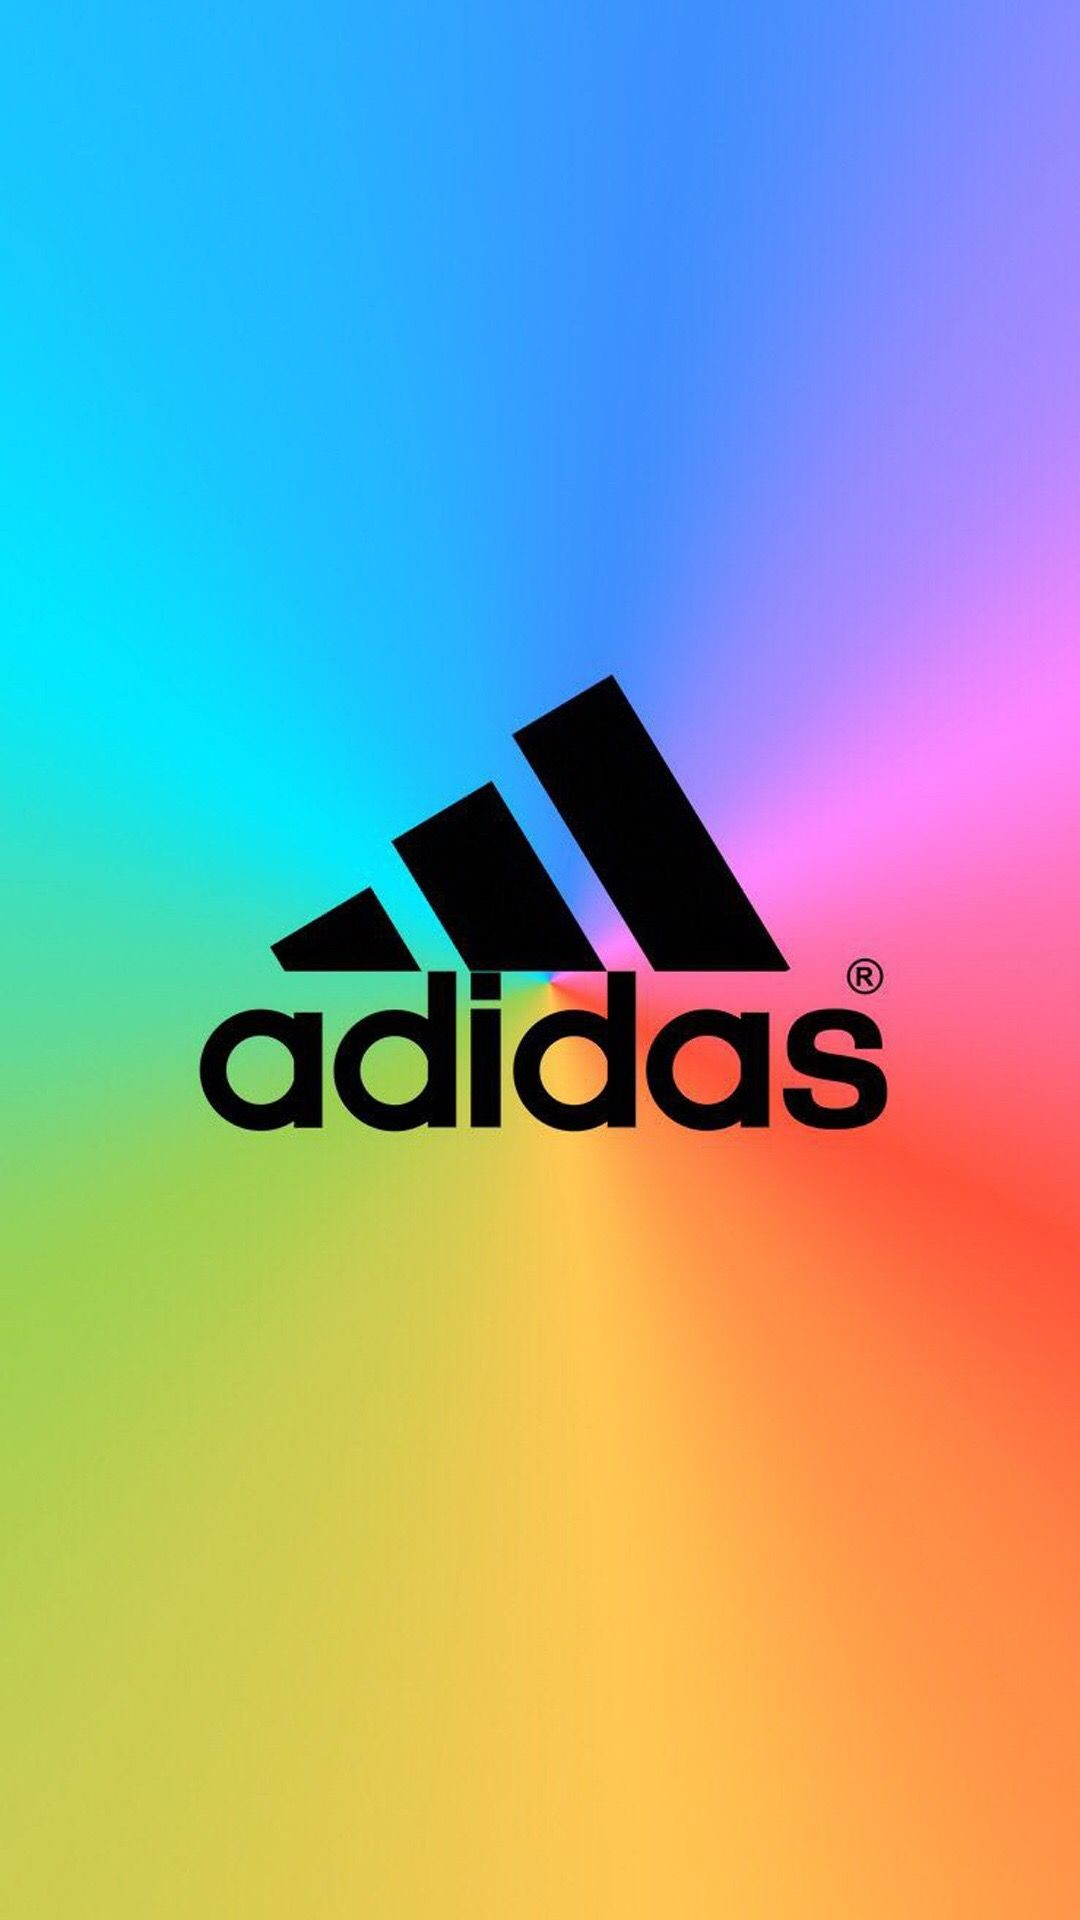 1080x1920 Adidas Blue Background Iphone 6 Hd Wallpaper